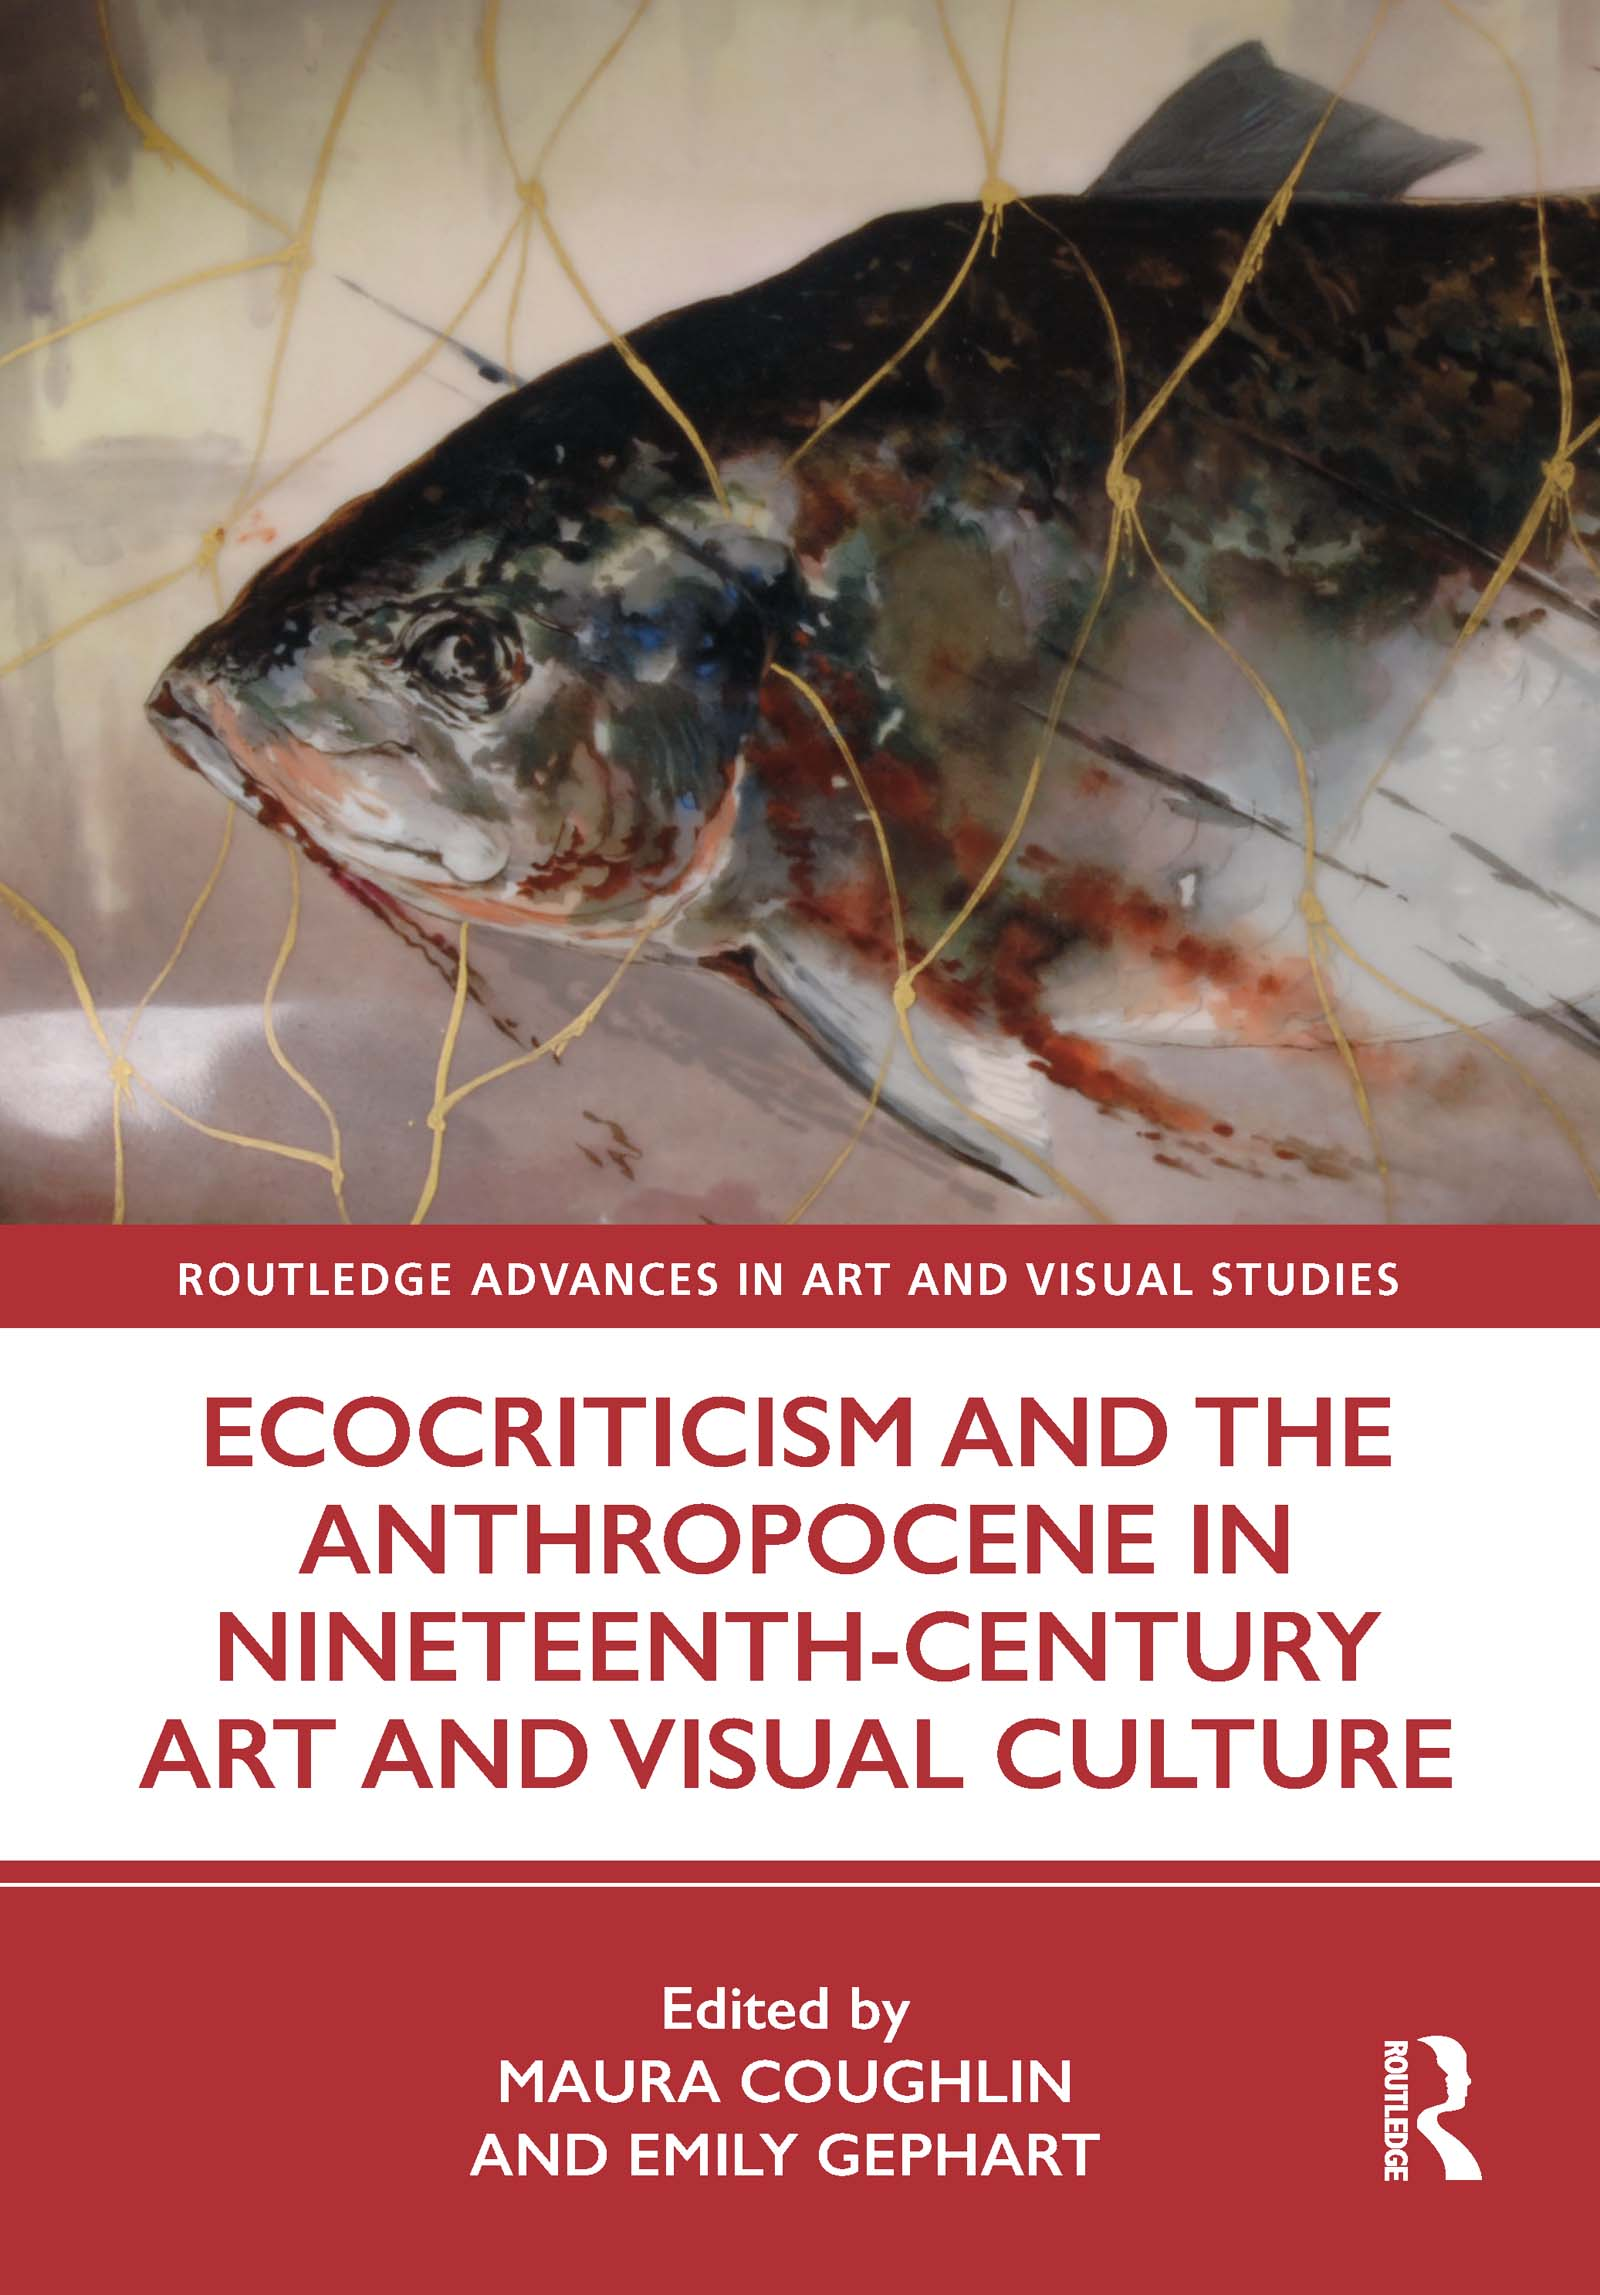 Ecocriticism and the Anthropocene in Nineteenth-Century Art and Visual Culture book cover